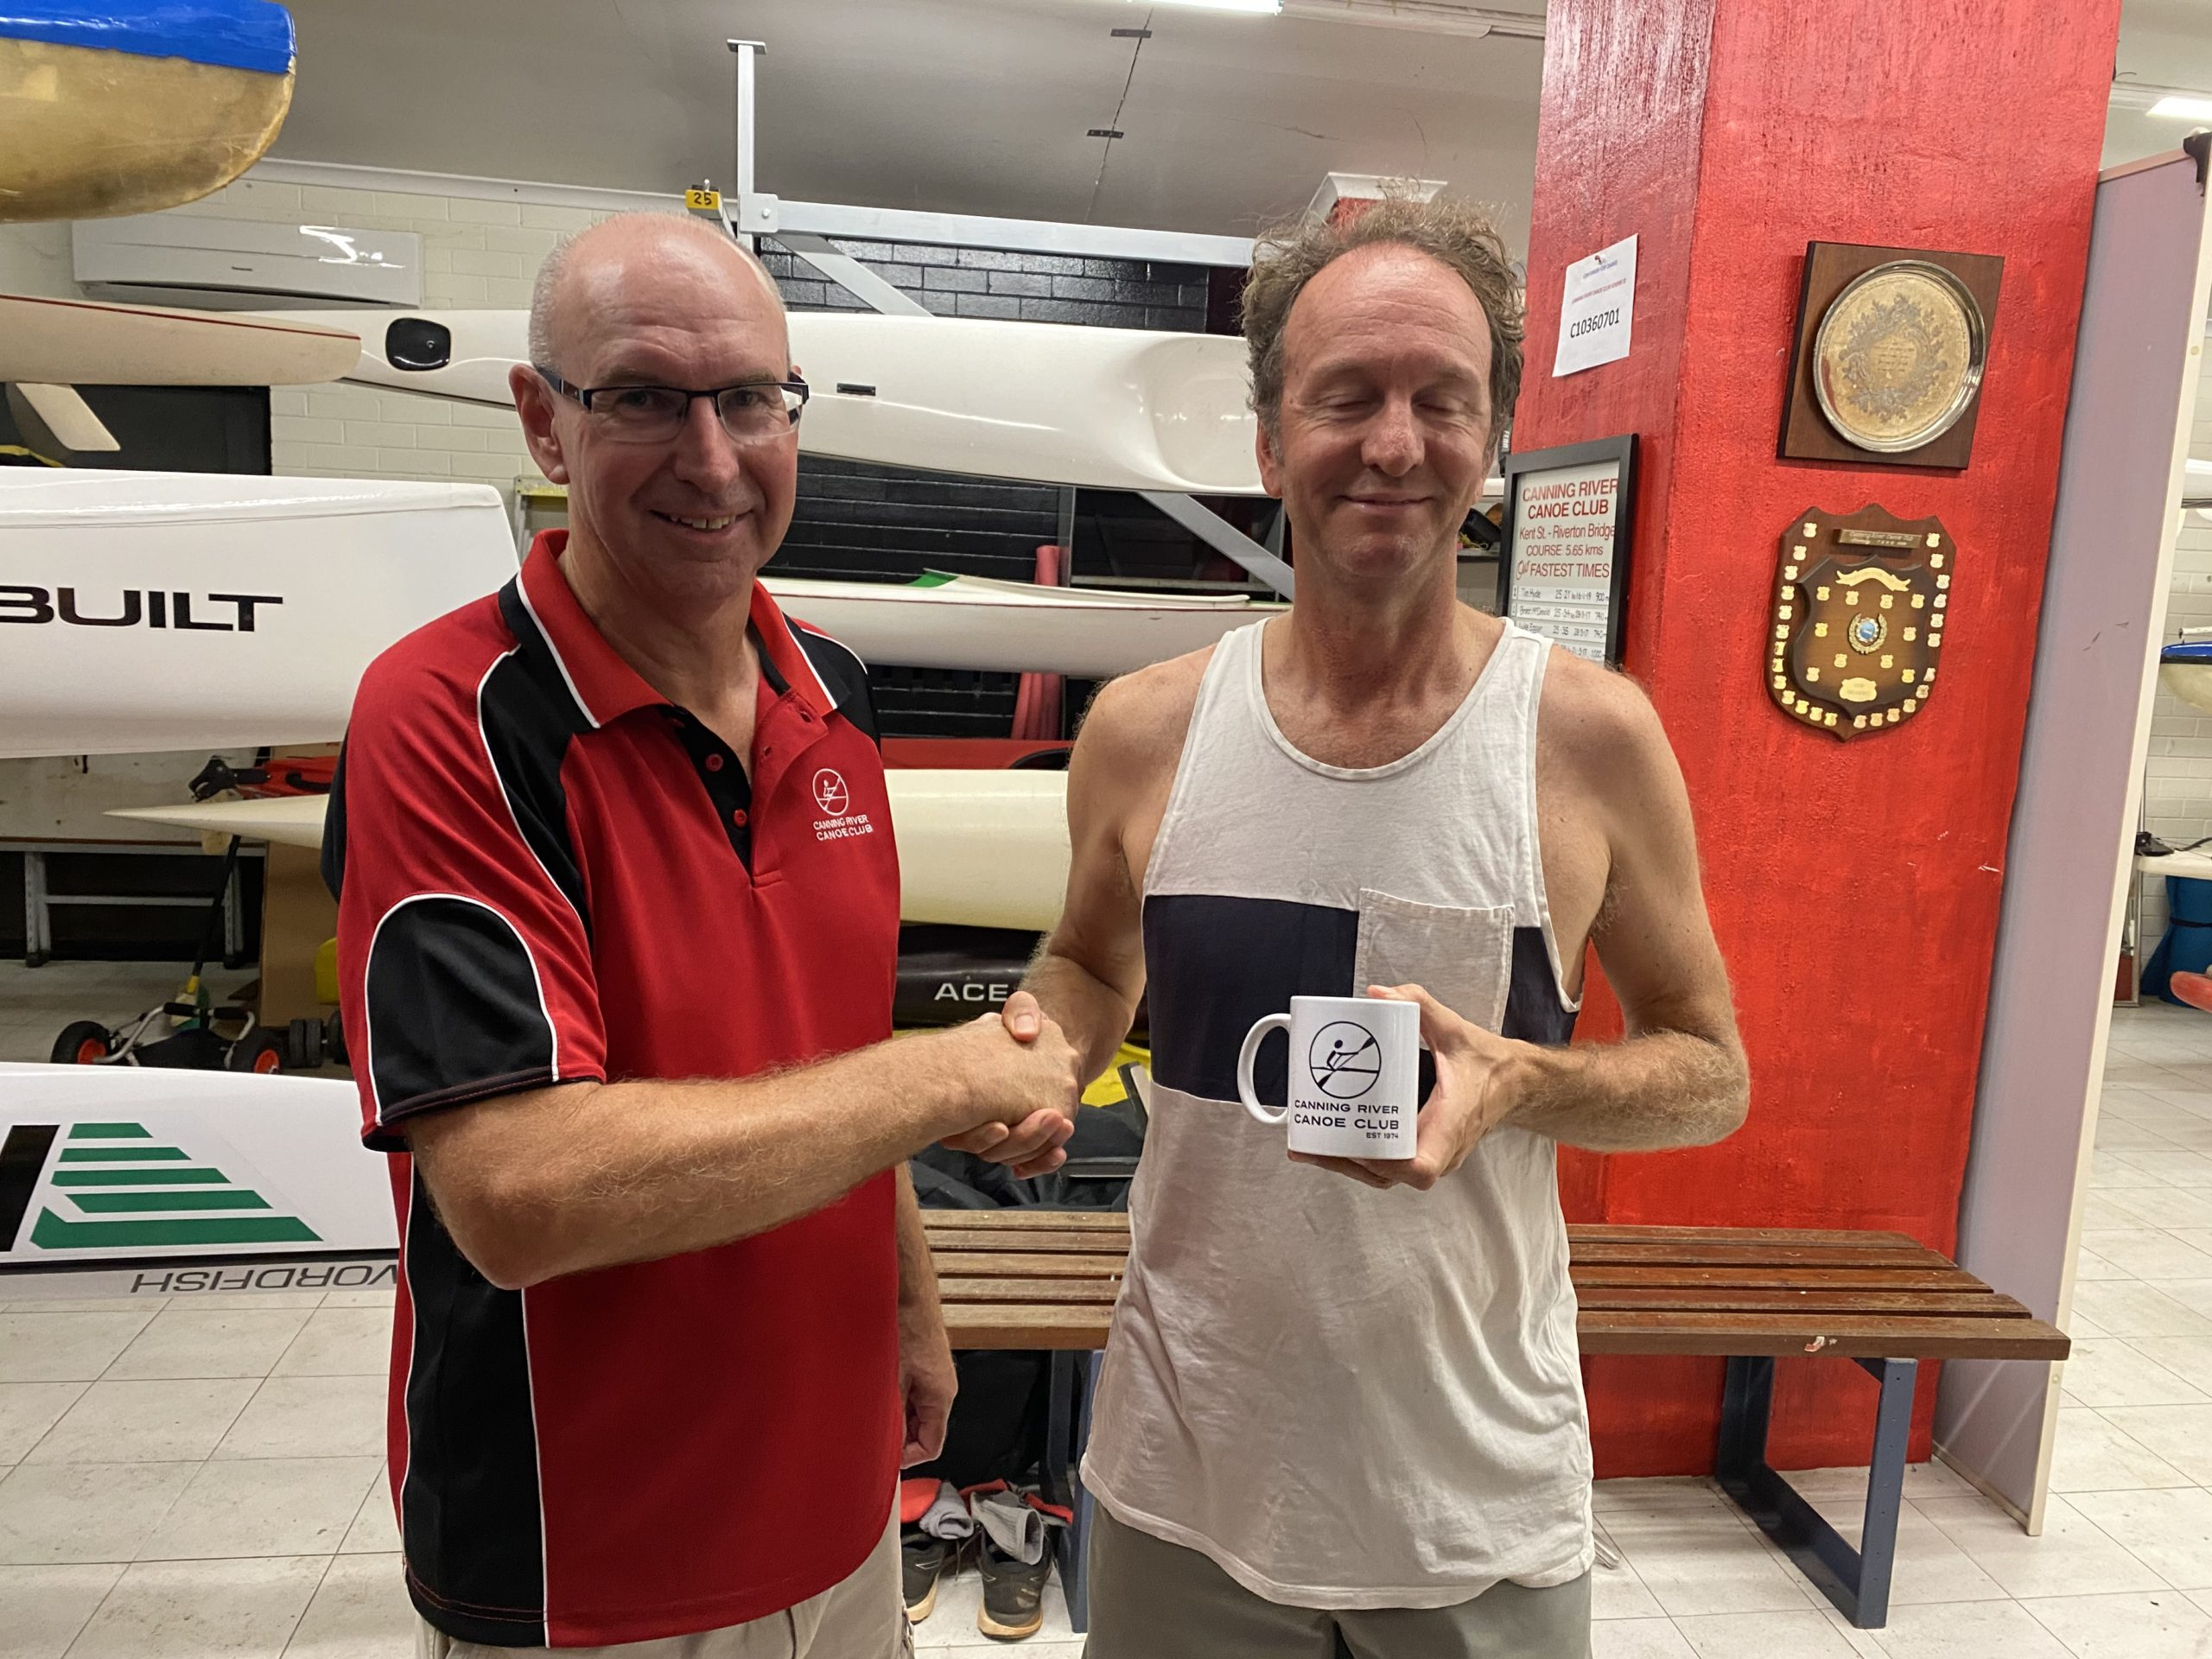 Tuesday 9th March 2021 : Tonight's photo shows club treasurer David Urquhart presenting tonight's winner Chris Graham with a movie voucher.